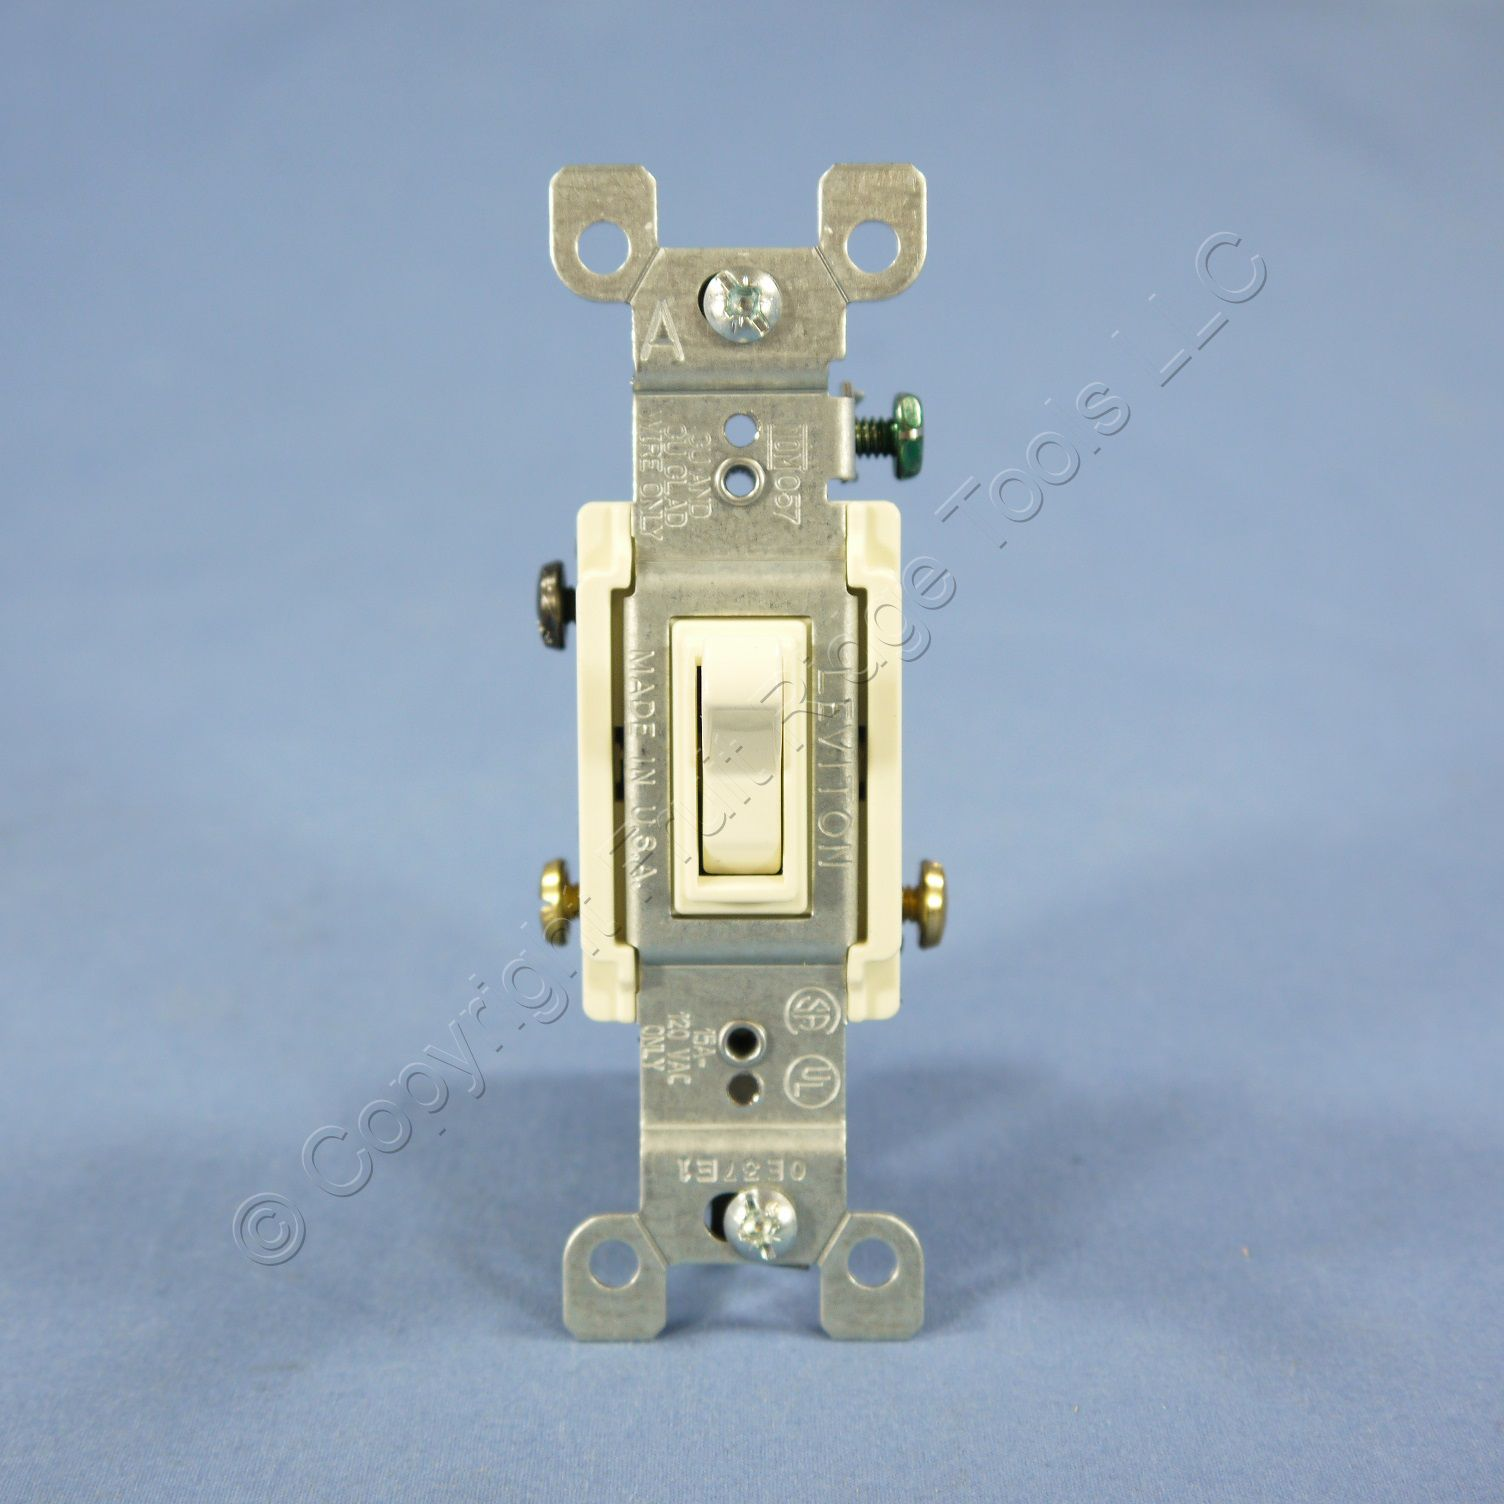 10 Leviton Almond 3 Way Toggle Wall Light Switches Quickwire 15a Triple Switch Wiring Diagram 1755 Rocker 2 Of 5 120v 1453 R2a